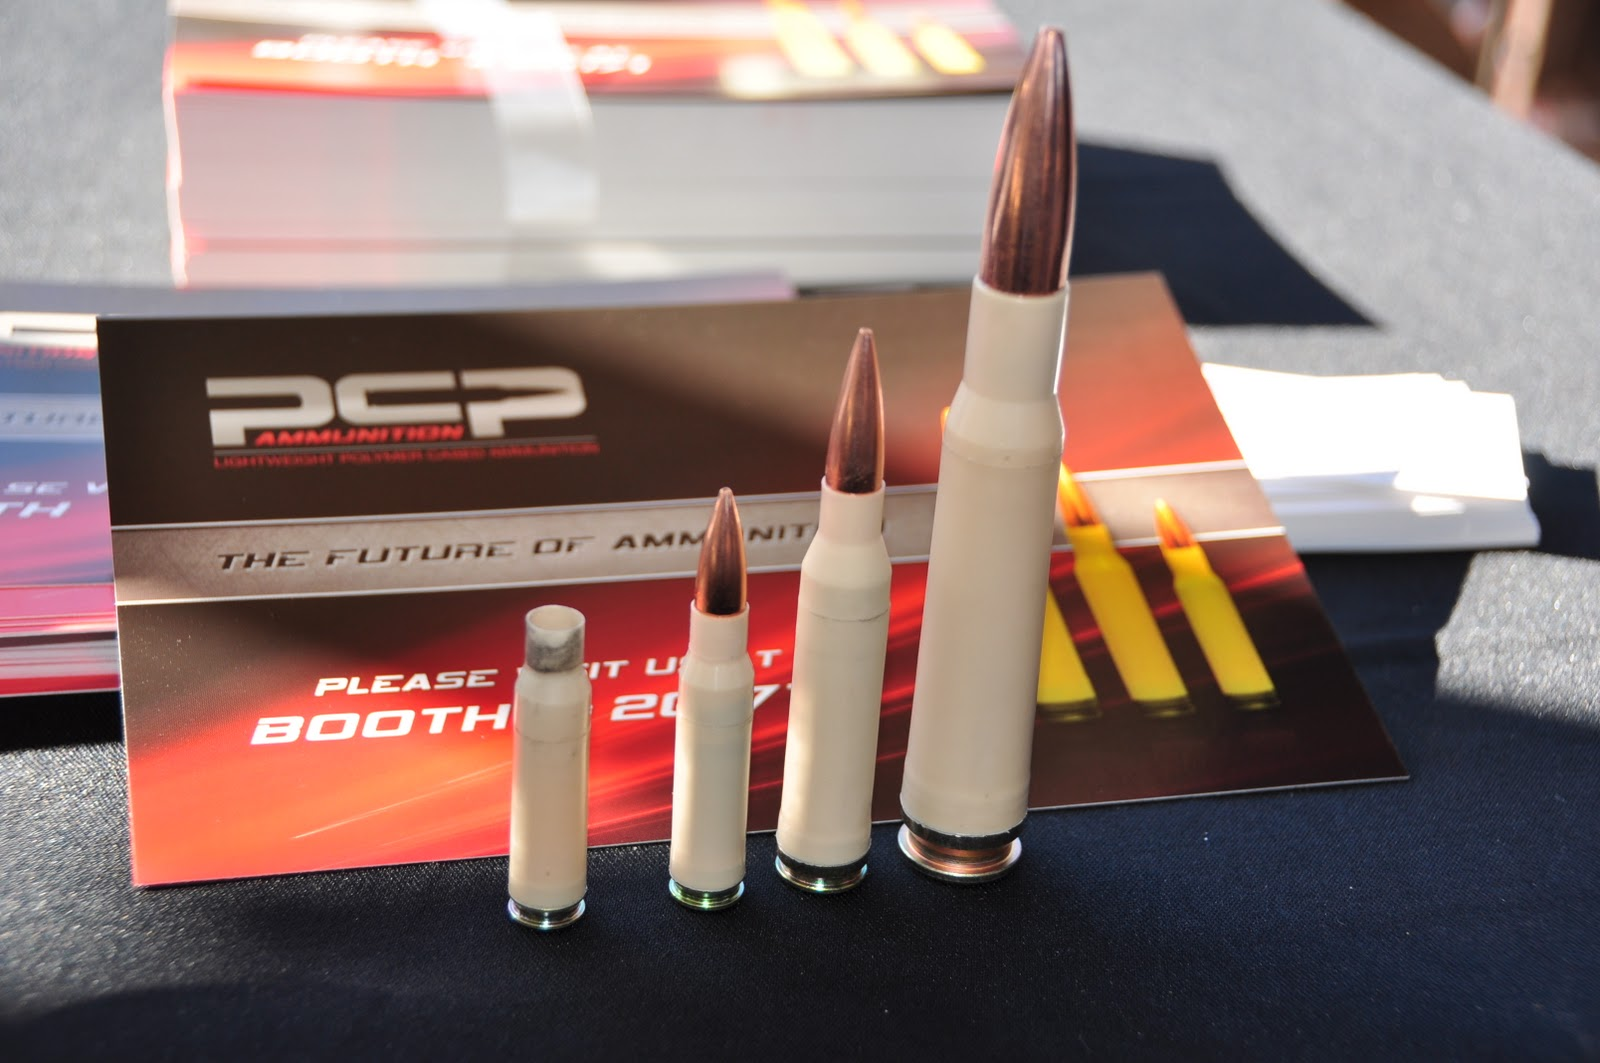 PCP Ammunition Polymer Cased Rifle Ammo Coyote School Blog 1 <!  :en  >PCP Ammunition Polymer Cased Rifle/Machine Gun Ammo for Military Combat and Civilian Tactical/Commercial Applications: Has the Era of High Heat Resistant Superplastic/Superpolymer Cartridge Cases Finally Arrived? <!  :  >